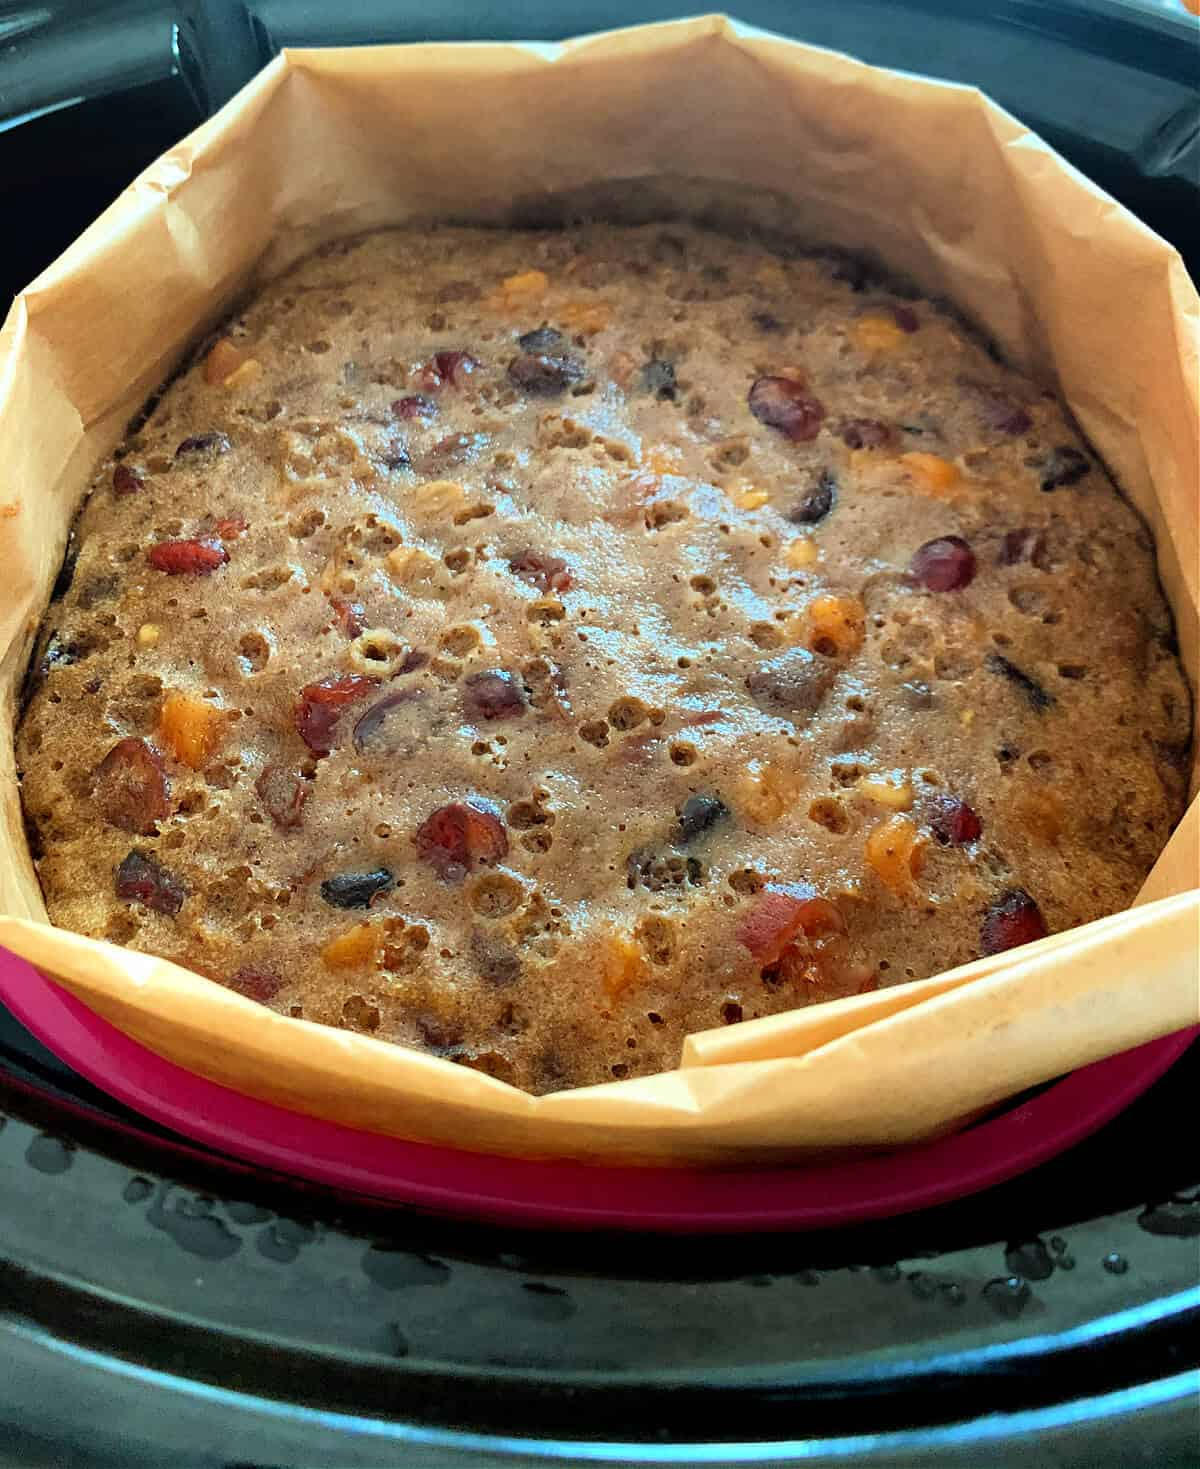 Christmas Cake in lined silicone pan in slow cooker, after baking.